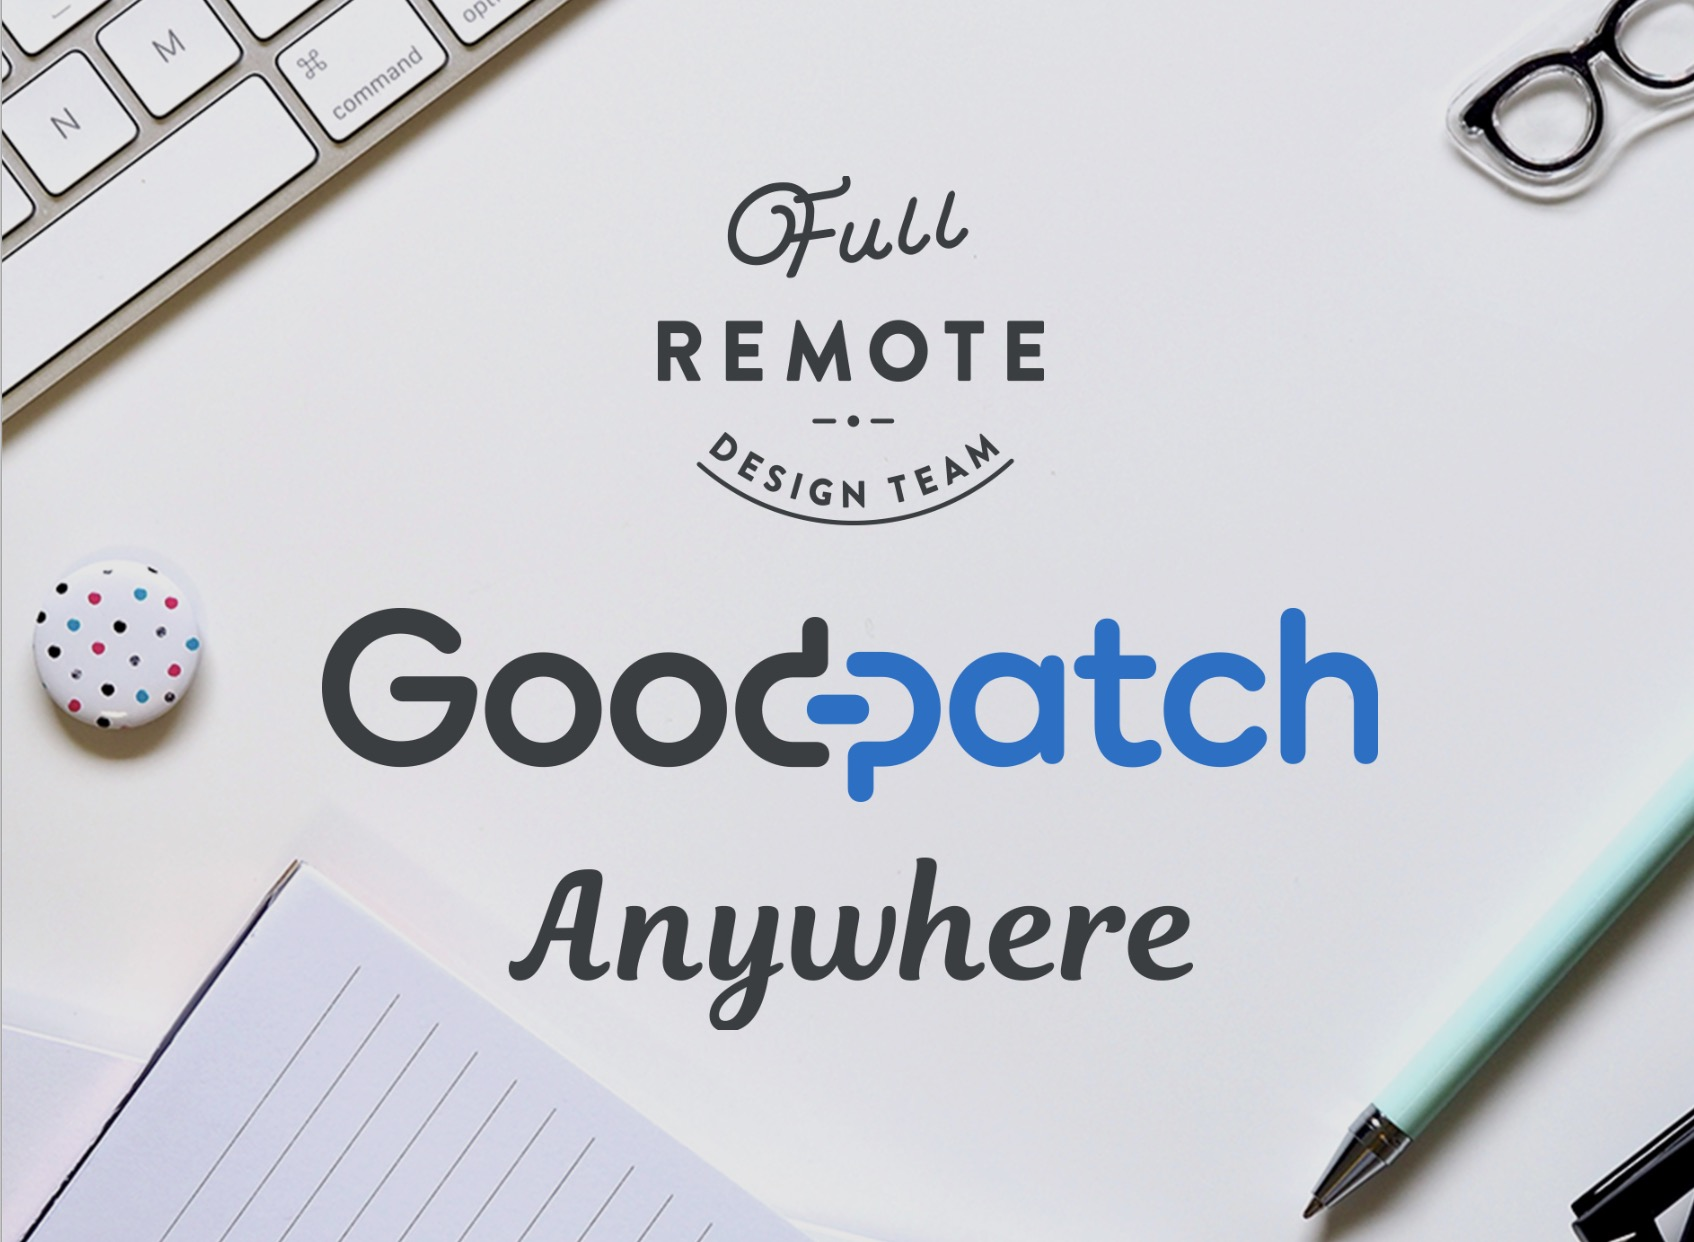 Goodpatch Anywhere